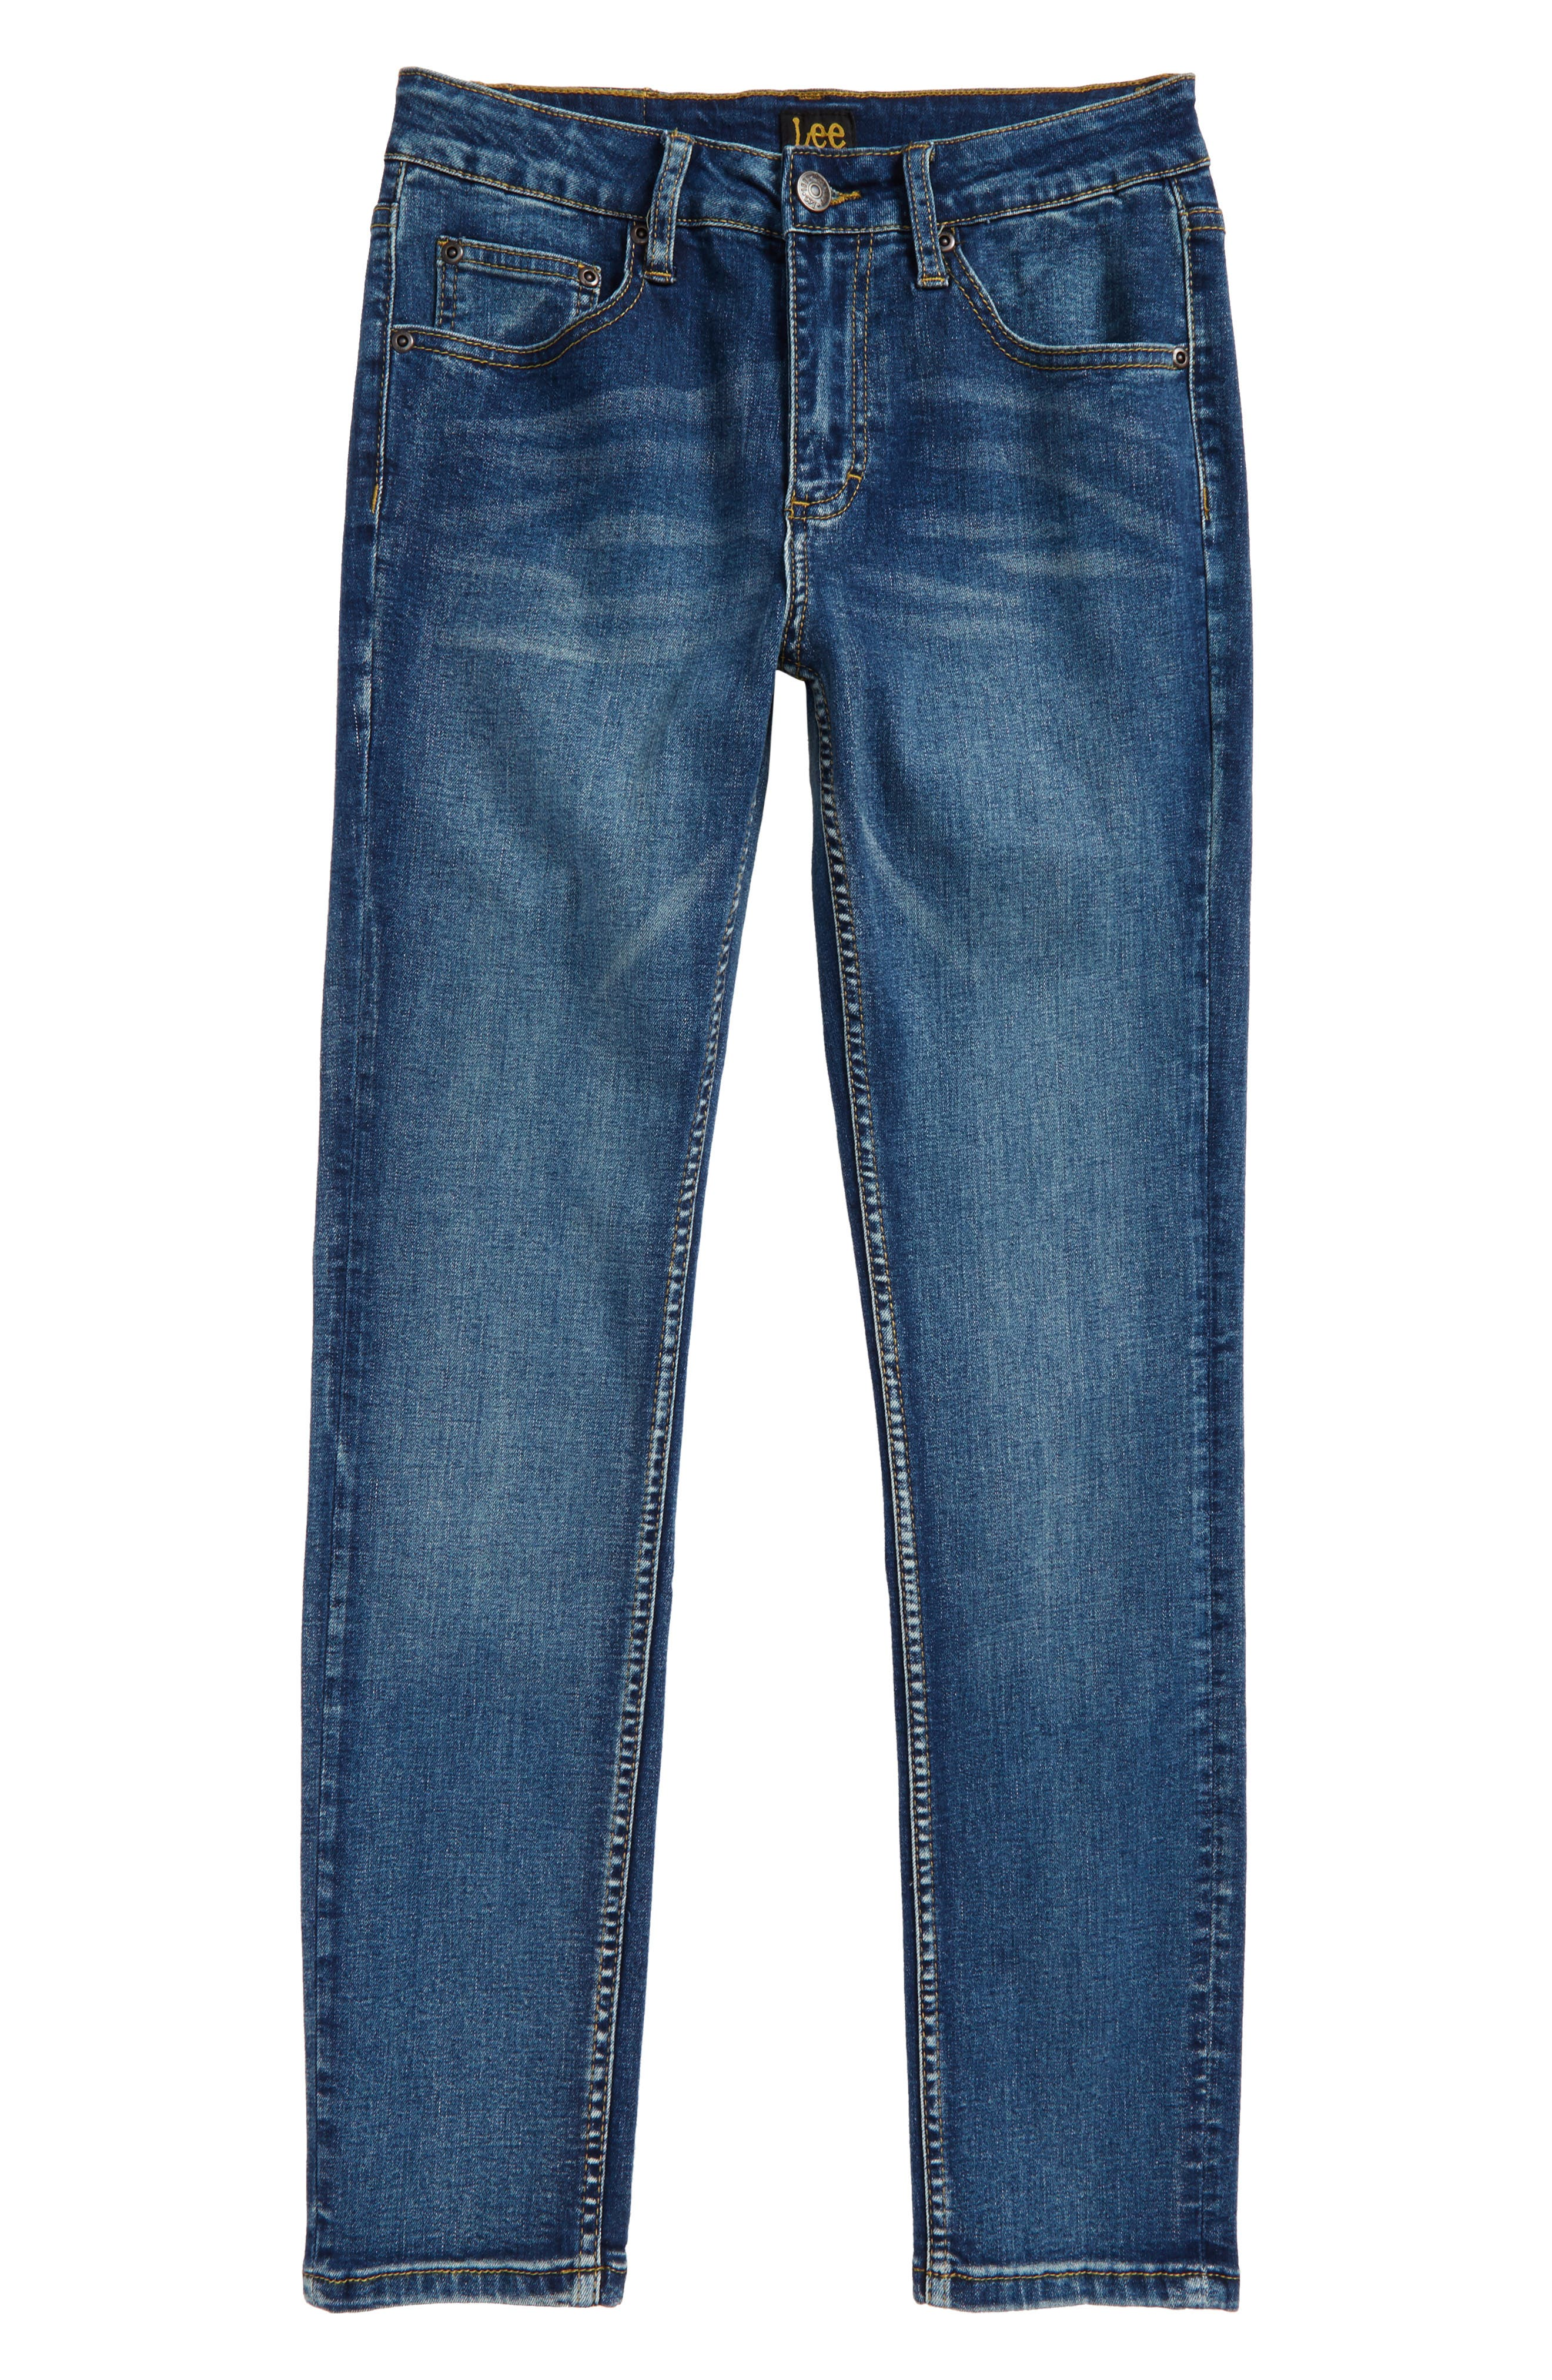 Stretch Skinny Jeans,                             Main thumbnail 1, color,                             483